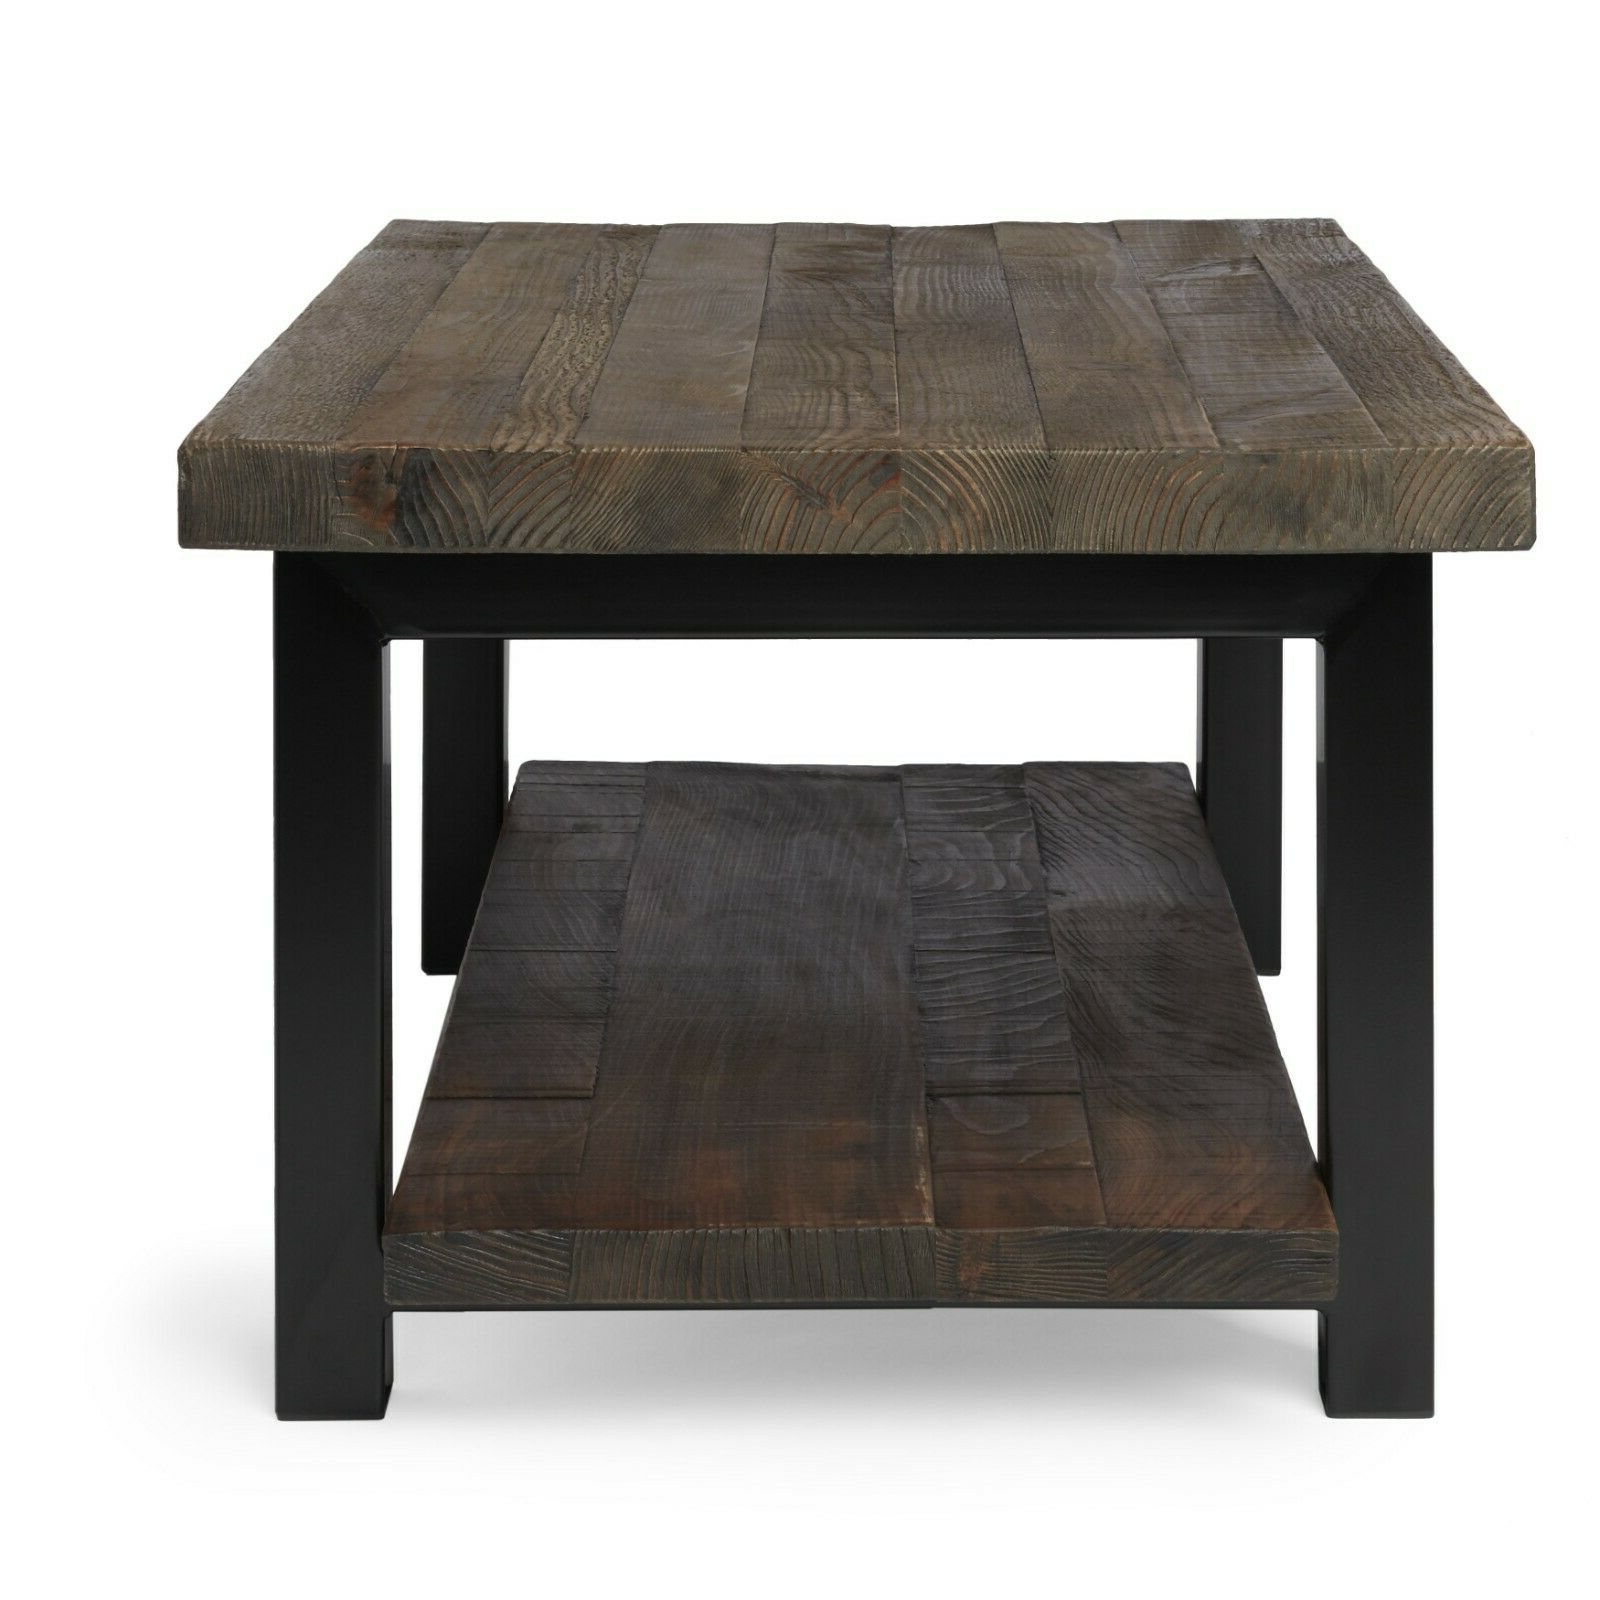 Carbon Loft Lawrence Reclaimed Wood 42 Inch Coffee Table Throughout Most Up To Date Carbon Loft Lawrence Reclaimed Wood 42 Inch Coffee Tables (View 7 of 20)